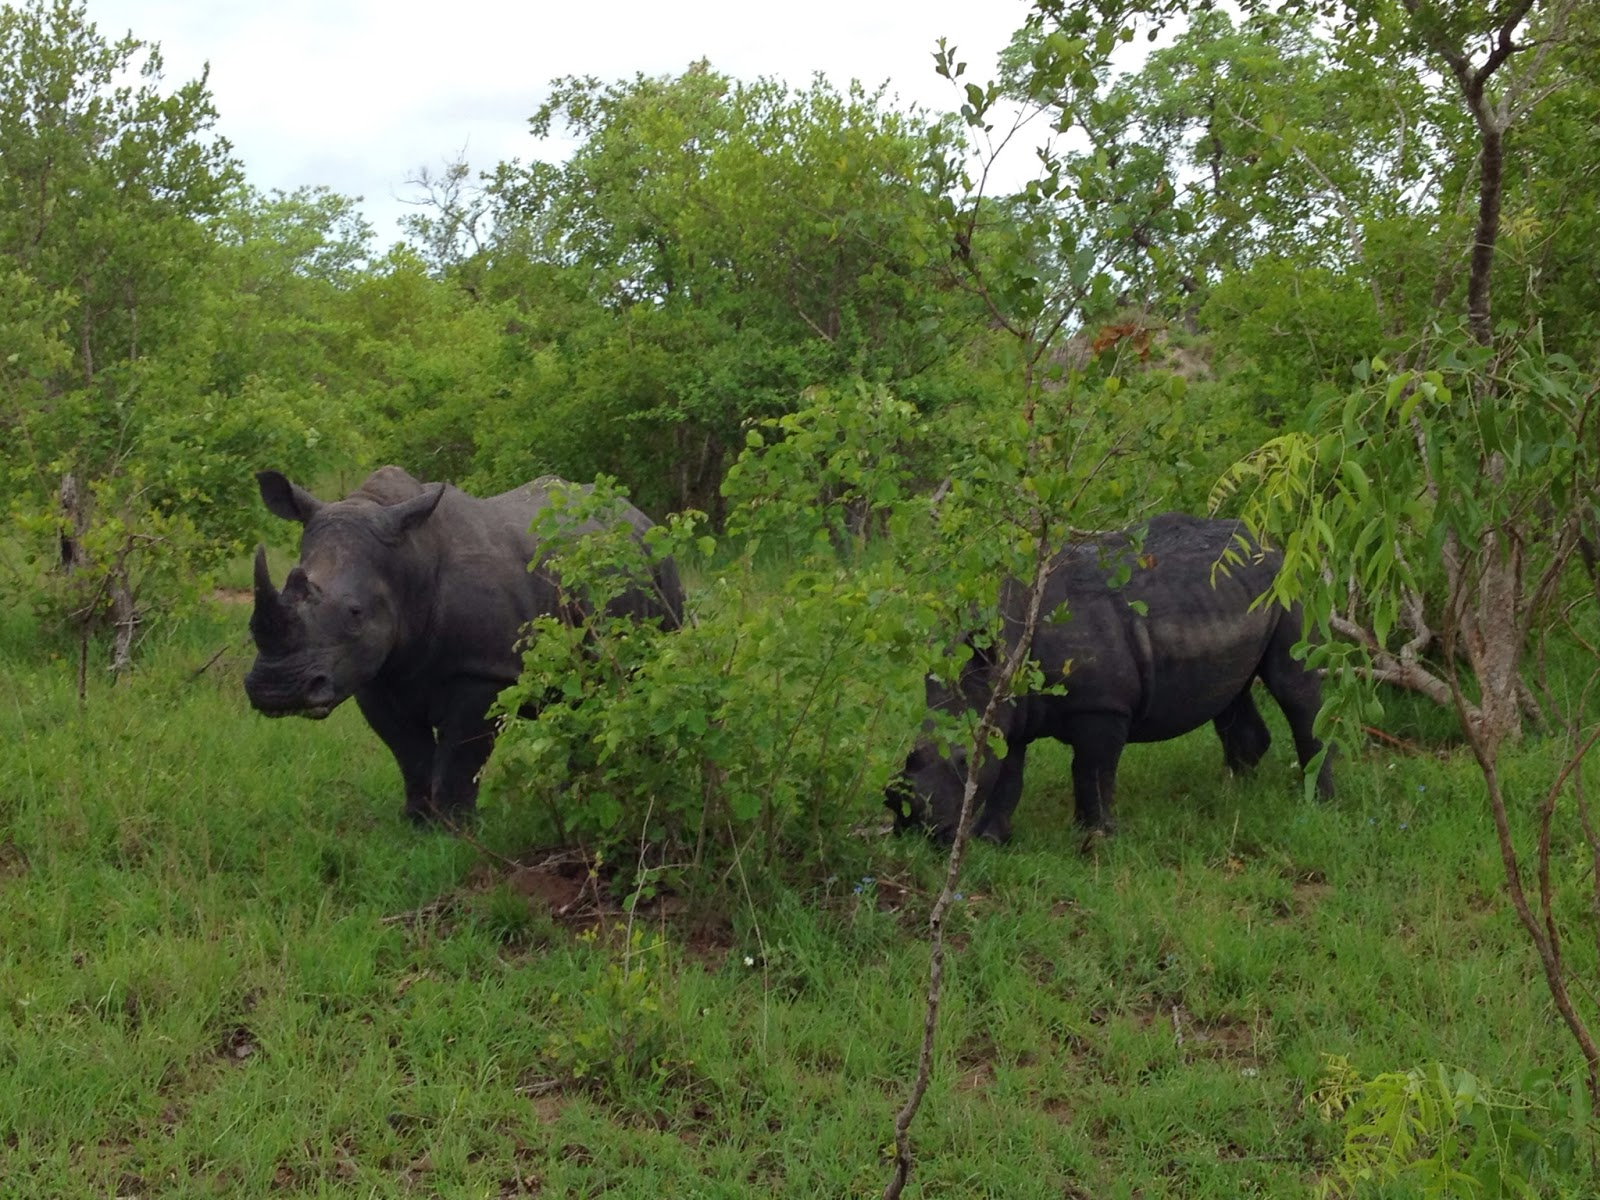 Sabi Sands - Other guests wanted to see white rhino and Liam found some